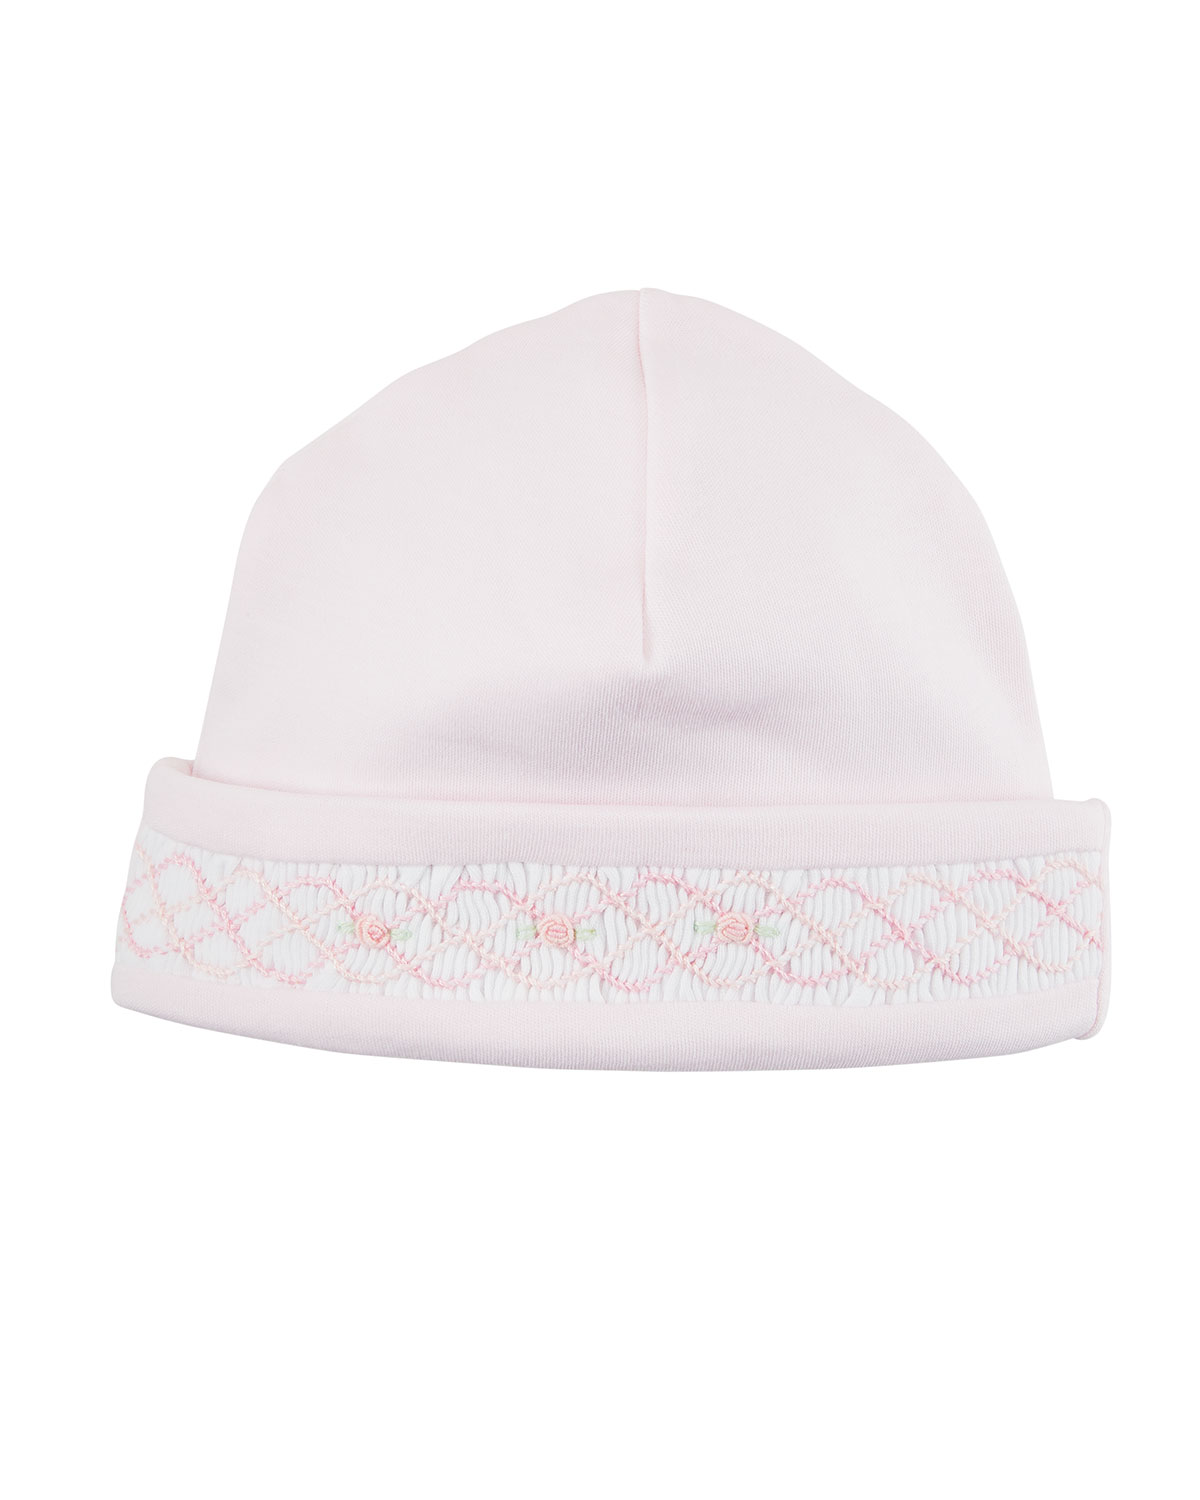 KISSY KISSY Clb Rosebuds Embroidered Baby Hat in Pink